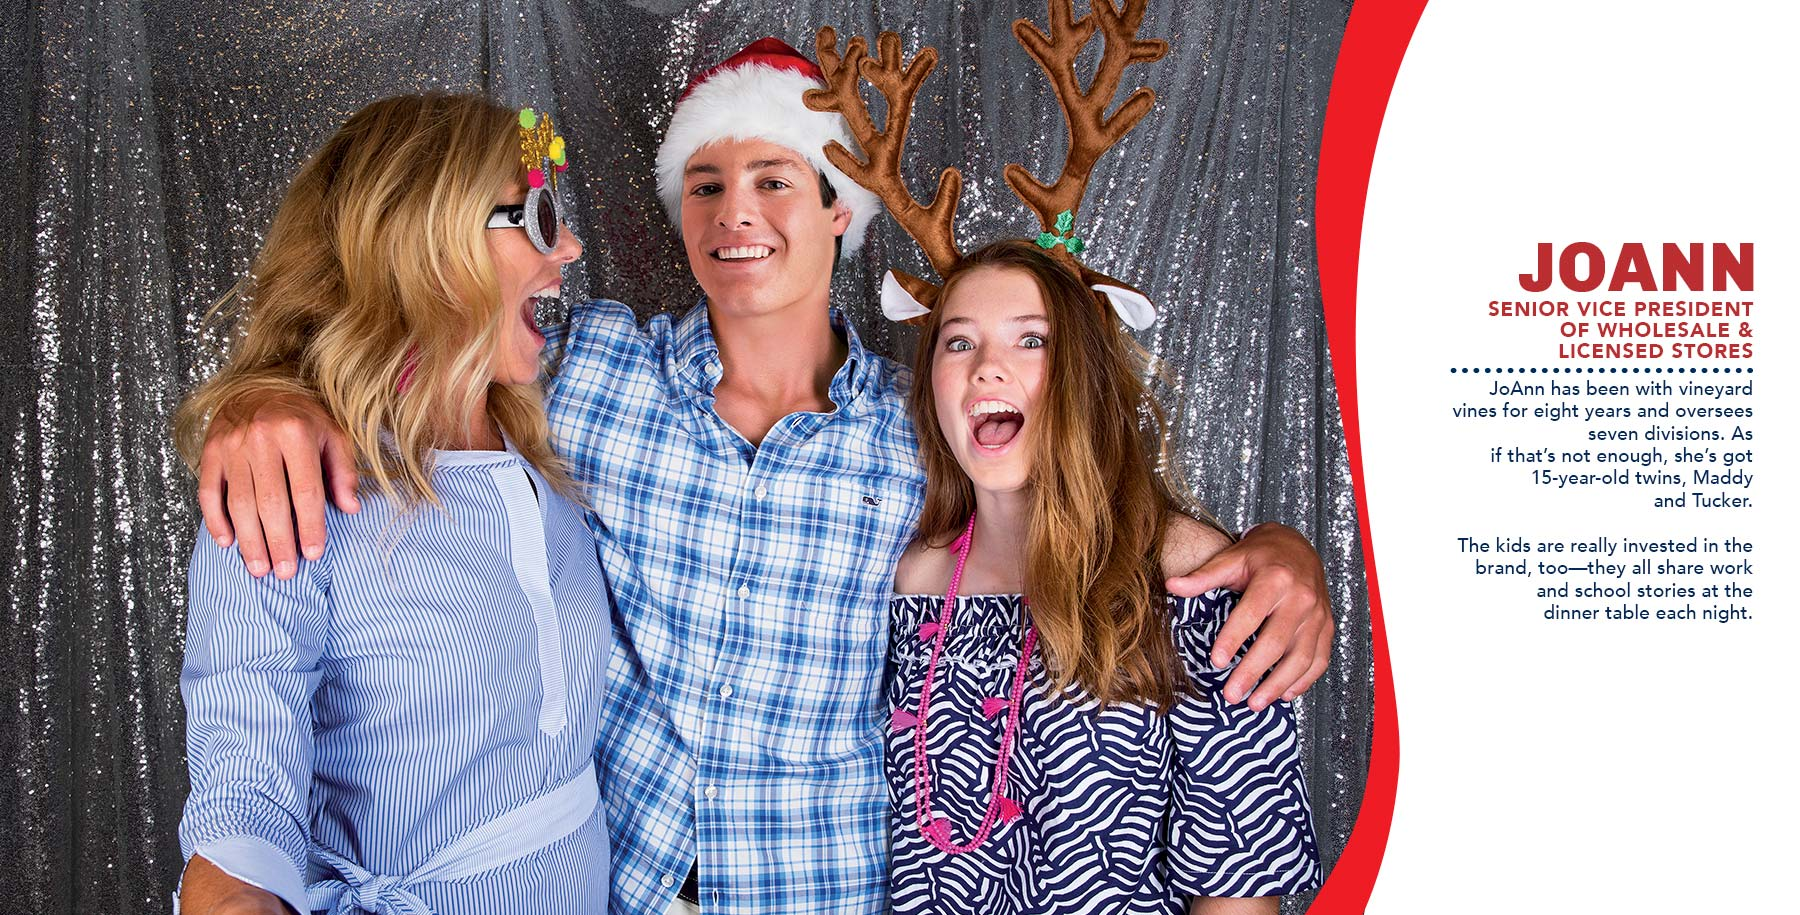 JoAnn: Senior Vice President of Wholesale & Licensed Stores. JoAnn has been with vineyard vines for eight years and oversees seven divisons. As if that's not enough, she's got 15-year old twins, Maddy and Tucker. The kids are really invested in the brand too—they all share work and school stories at the dinner table each night.